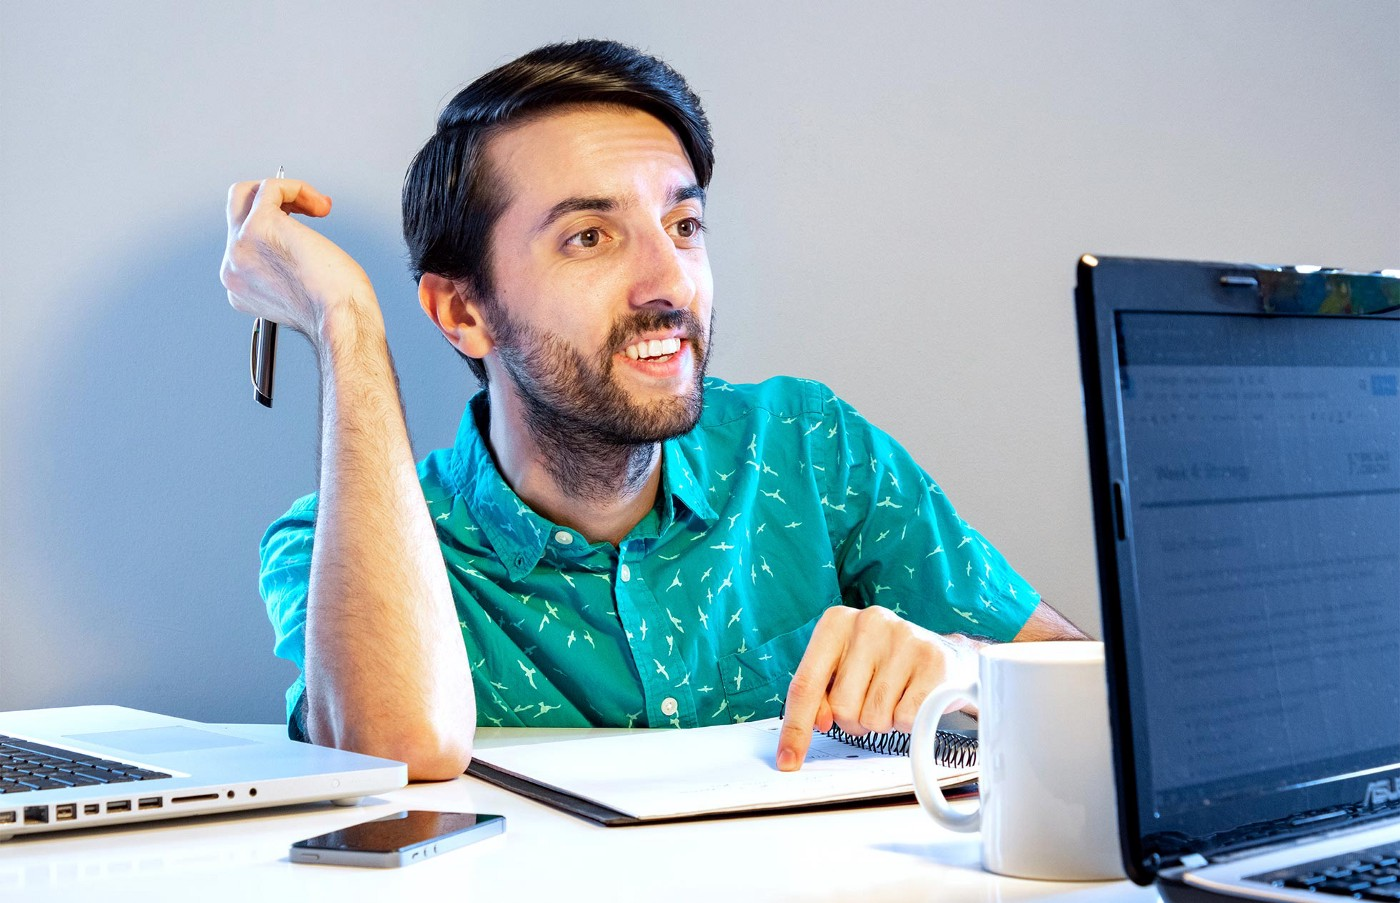 A 20-something man in a teal shirt smiles welcomingly while pointing at a notebook next to his laptop.